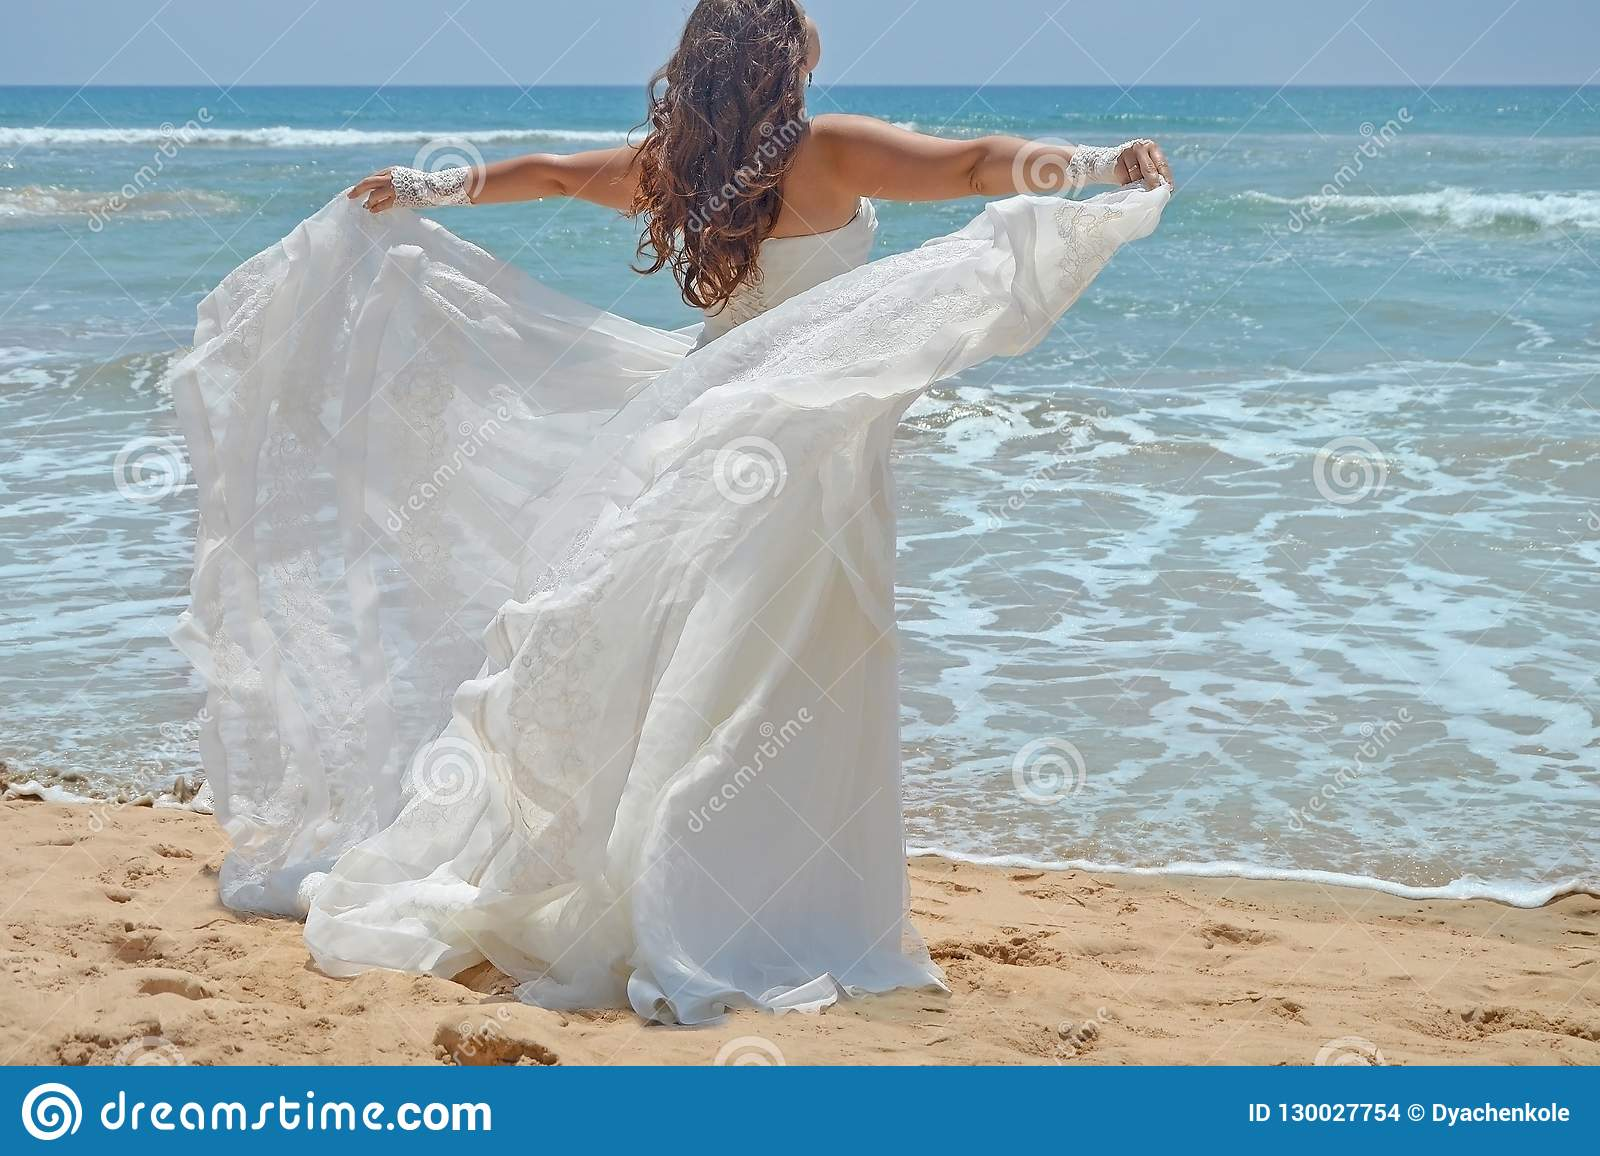 Long-haired brunette bride straightens her dress standing on the sand, girl looks up at the sky on beach on the Indian Ocean. Wedd